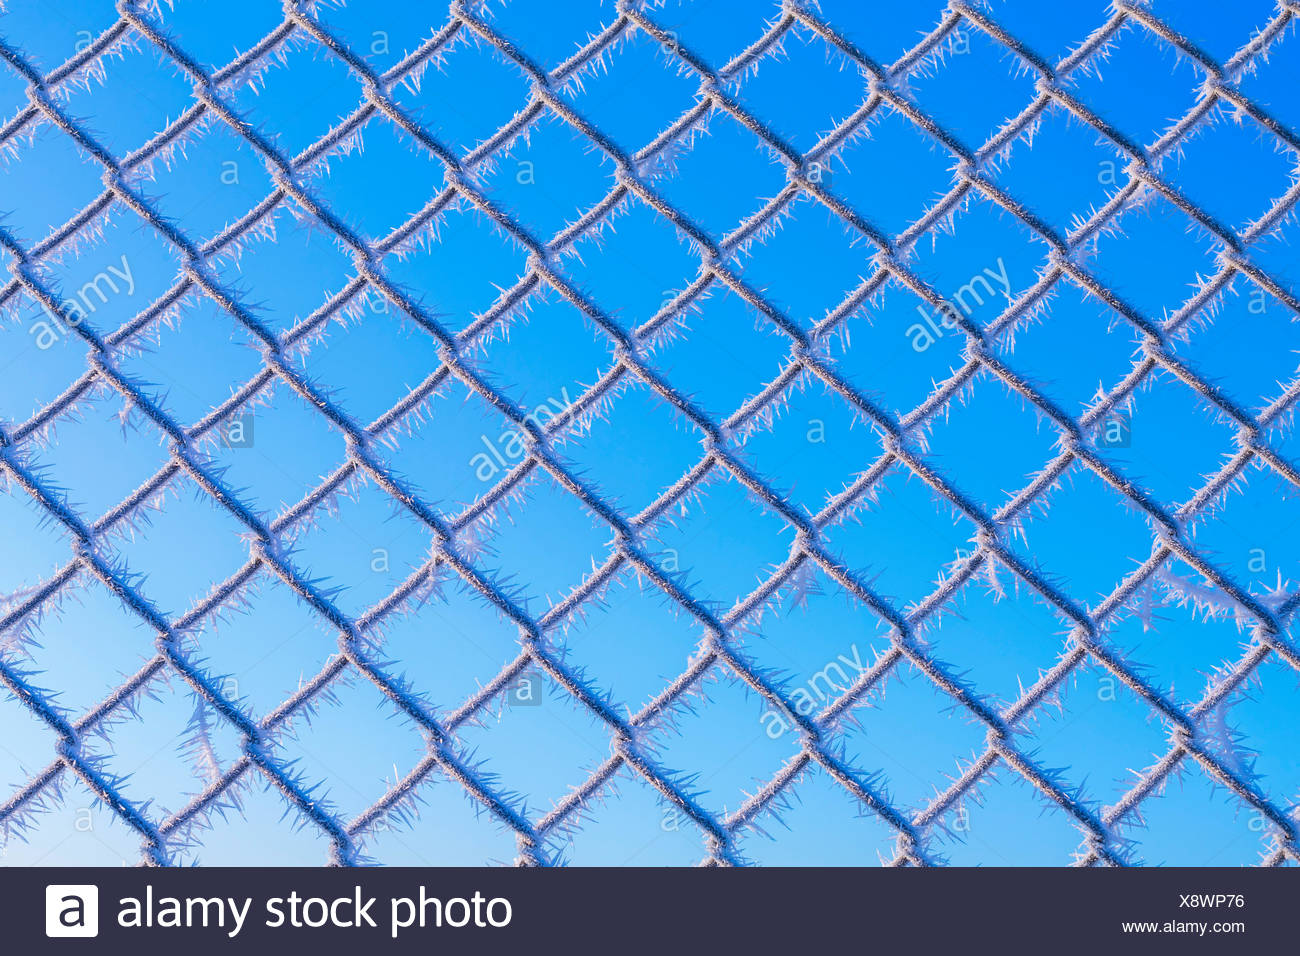 Drahtzaun Stock Photos & Drahtzaun Stock Images - Alamy